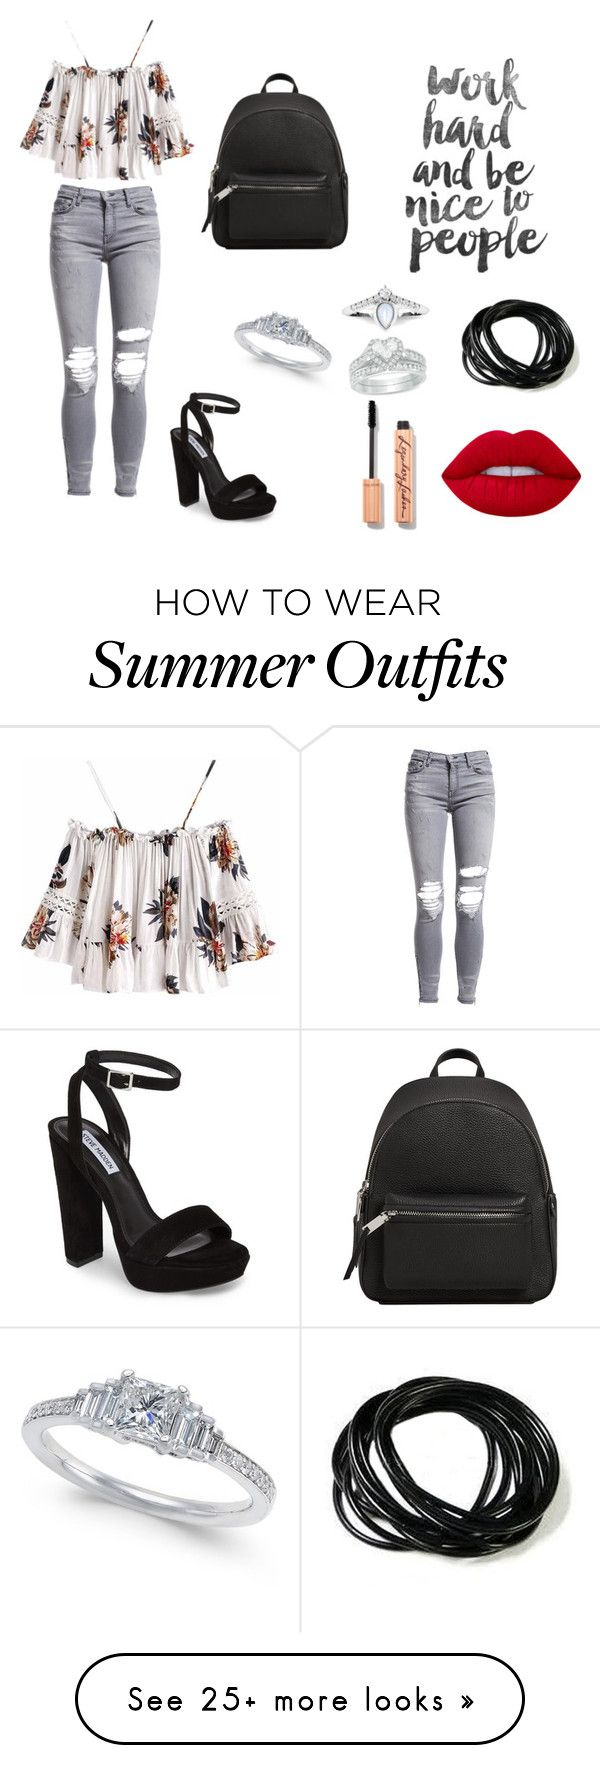 """""""Great Summer Look Outfit"""" by mionadervisevic on Polyvore featuring AMIRI, Steve Madden, MANGO and Lime Crime"""